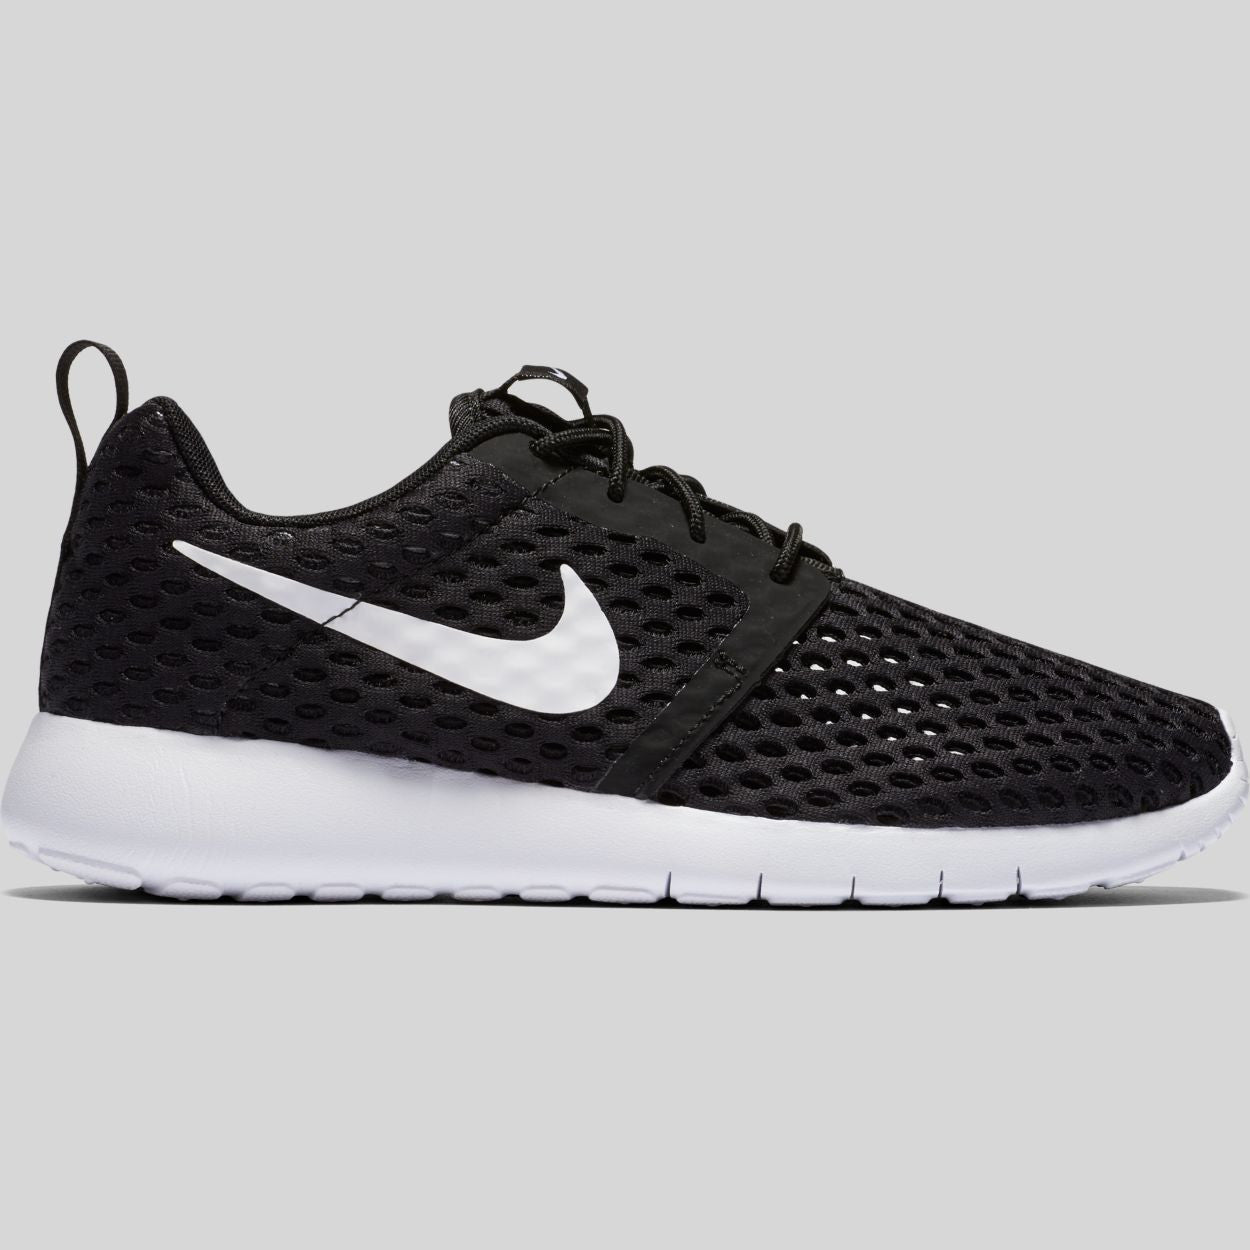 bd5a01df04690 Nike Roshe One Flight Weight (GS) Black White (705485-008)